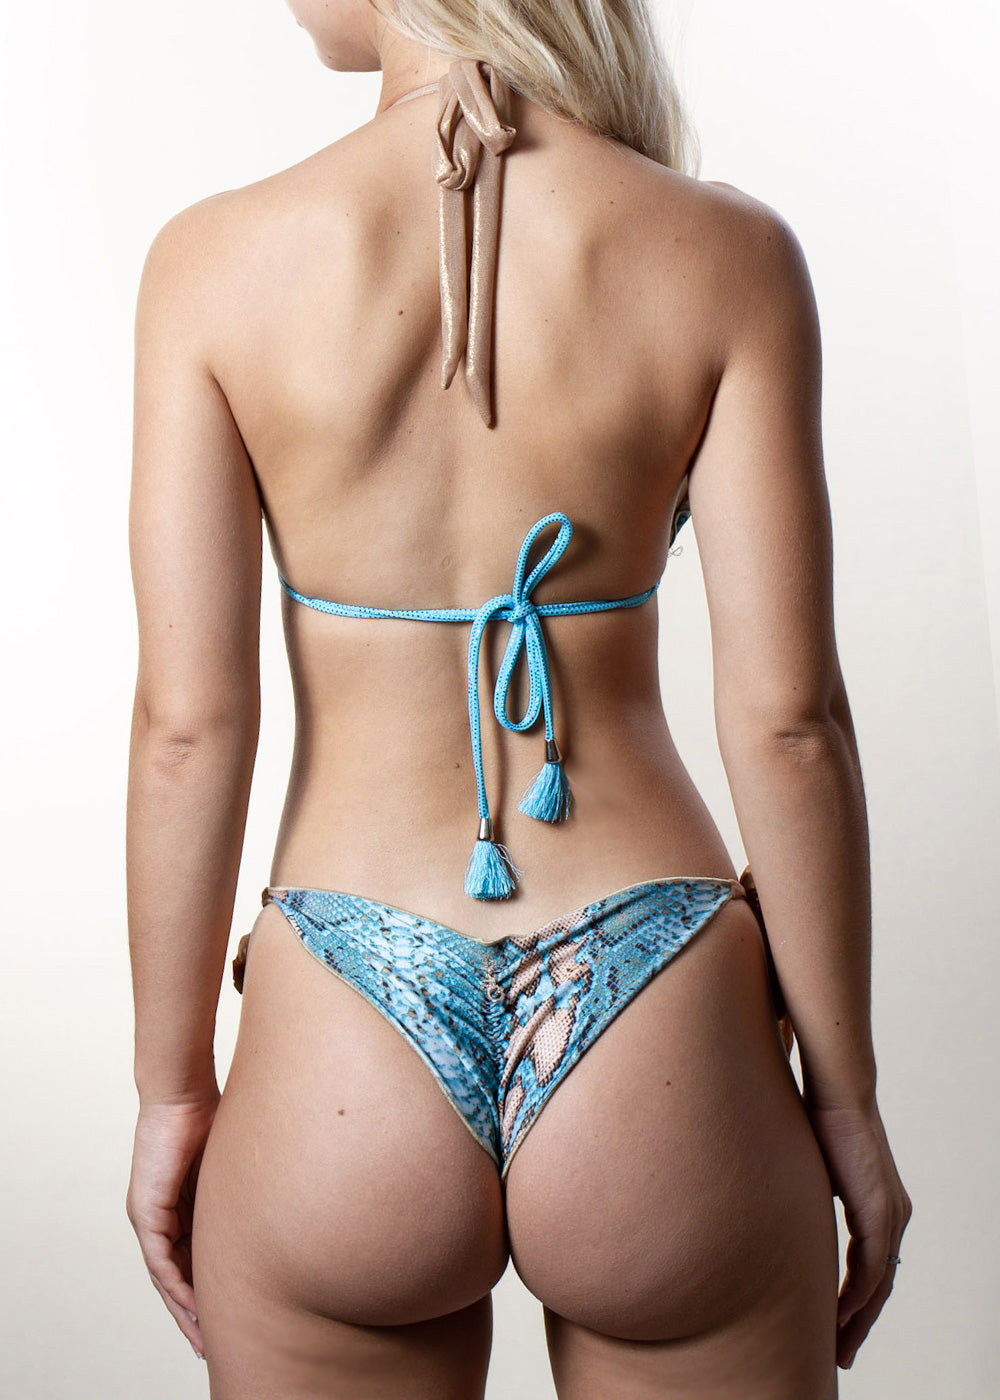 Georgia turquoise snakeprint gold mesh triangle side-tie bikini bottom